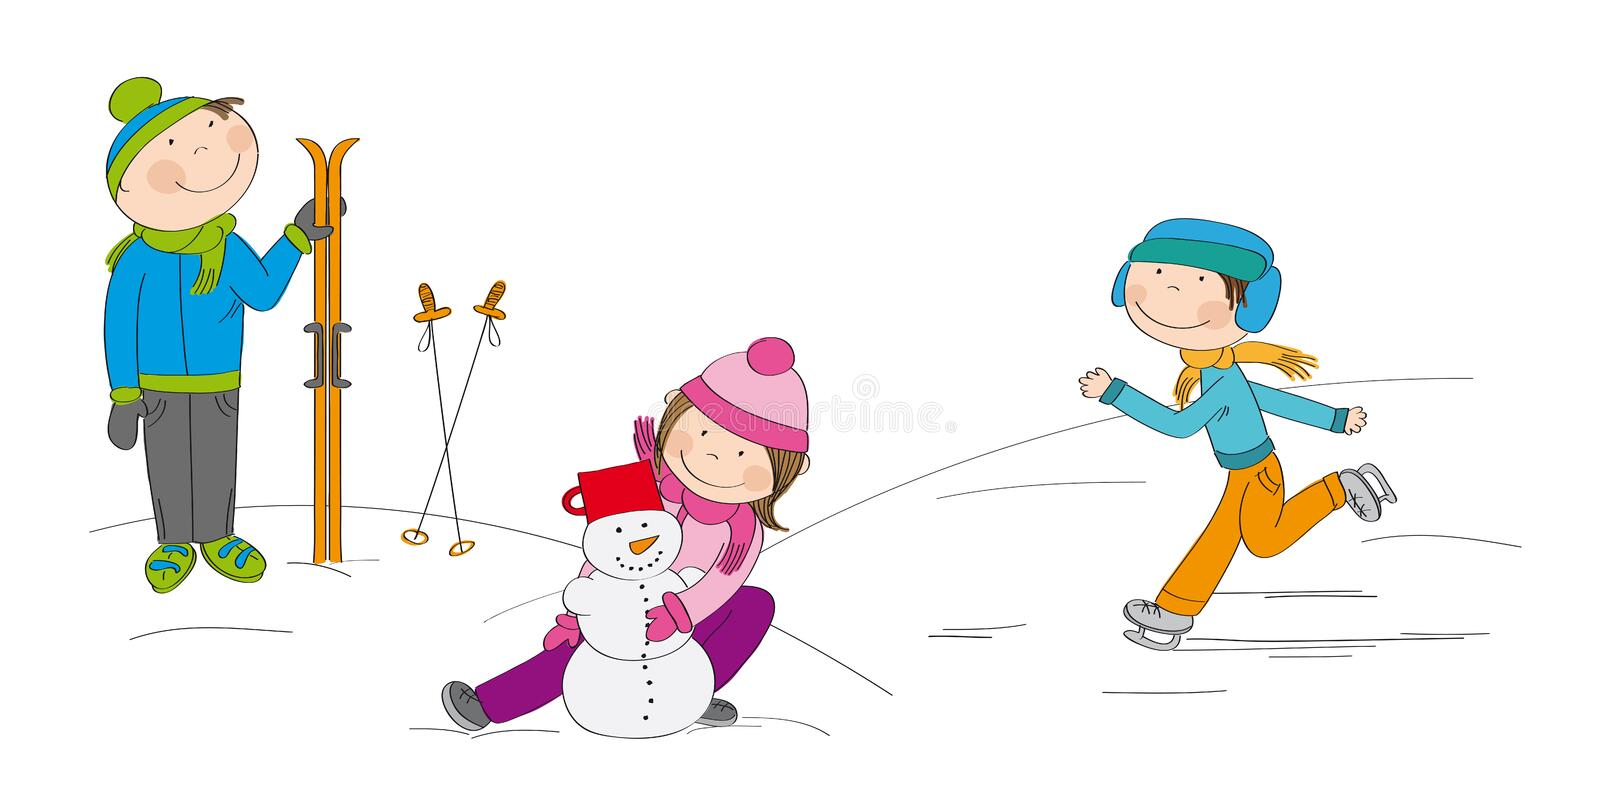 Children playing outside in the snow royalty free illustration